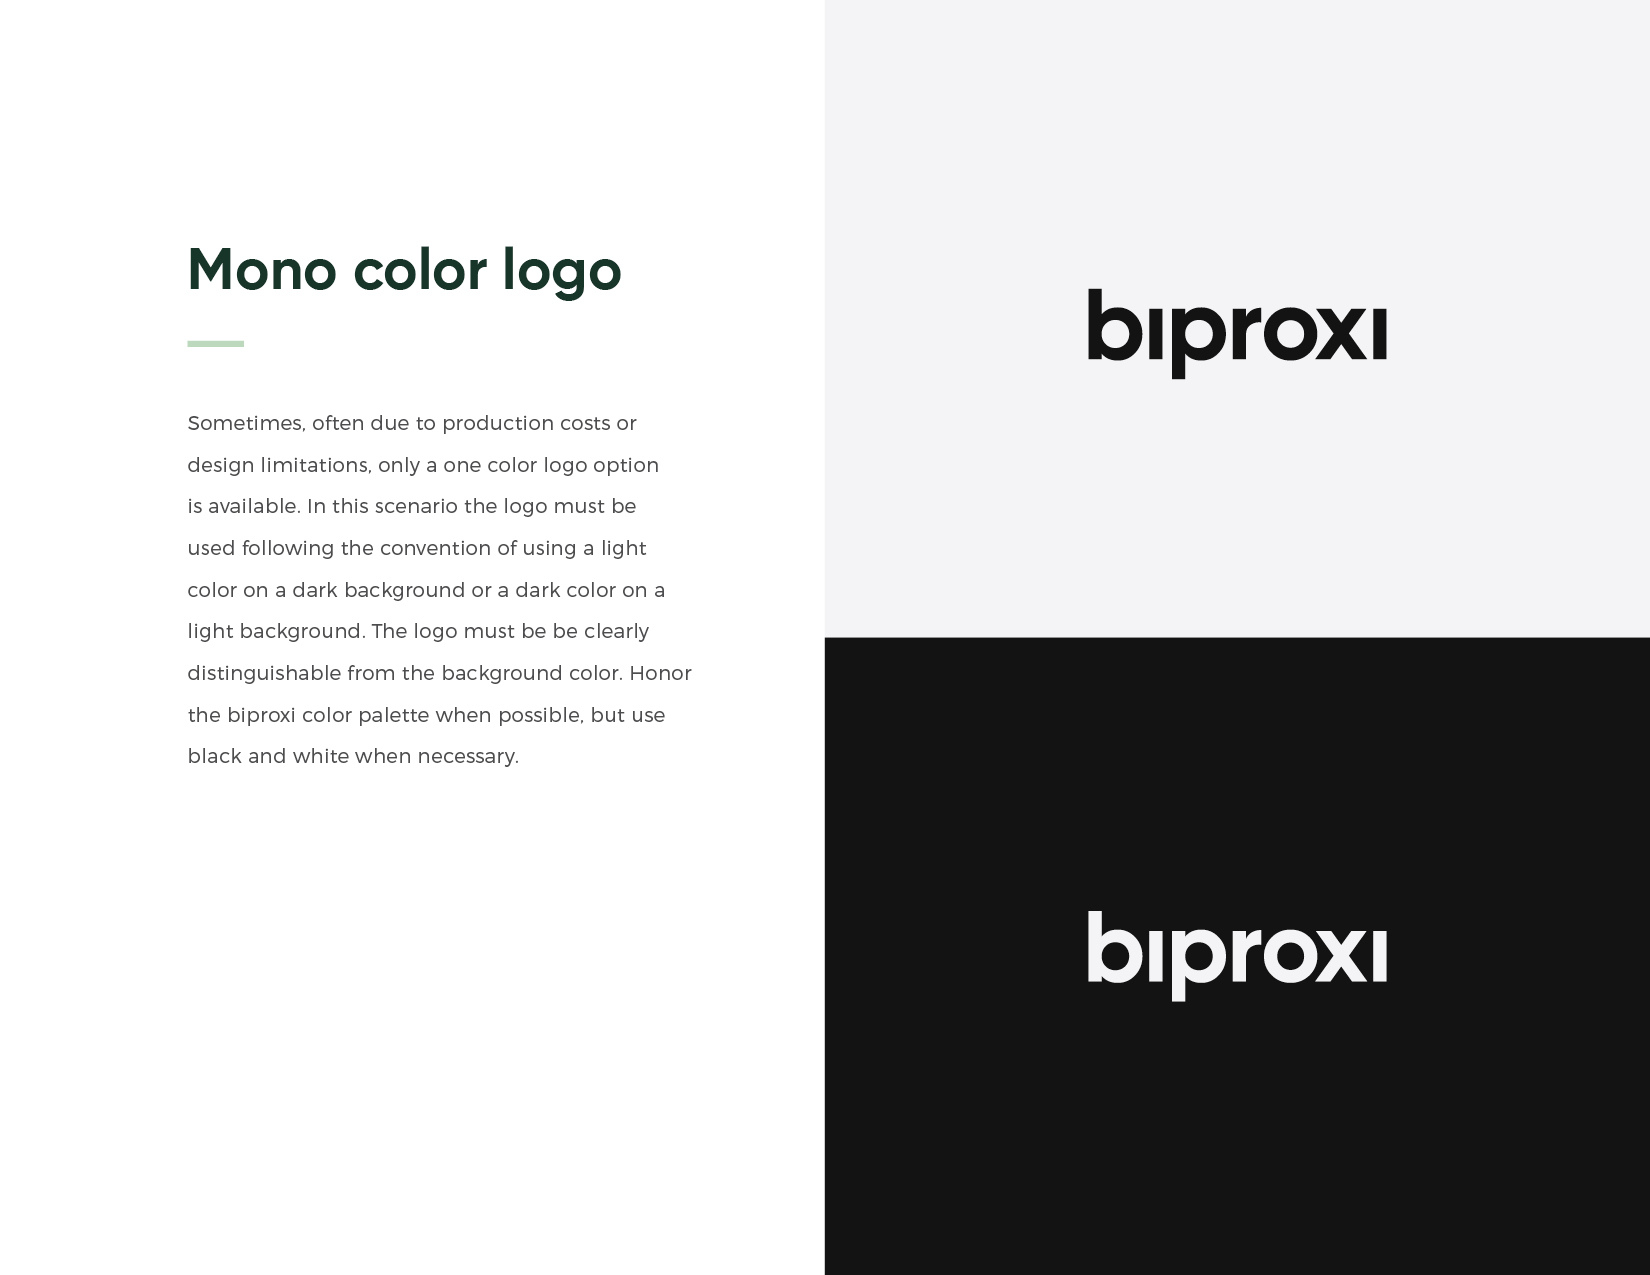 Raymond Lombardi design for Biproxi brand guidelines.